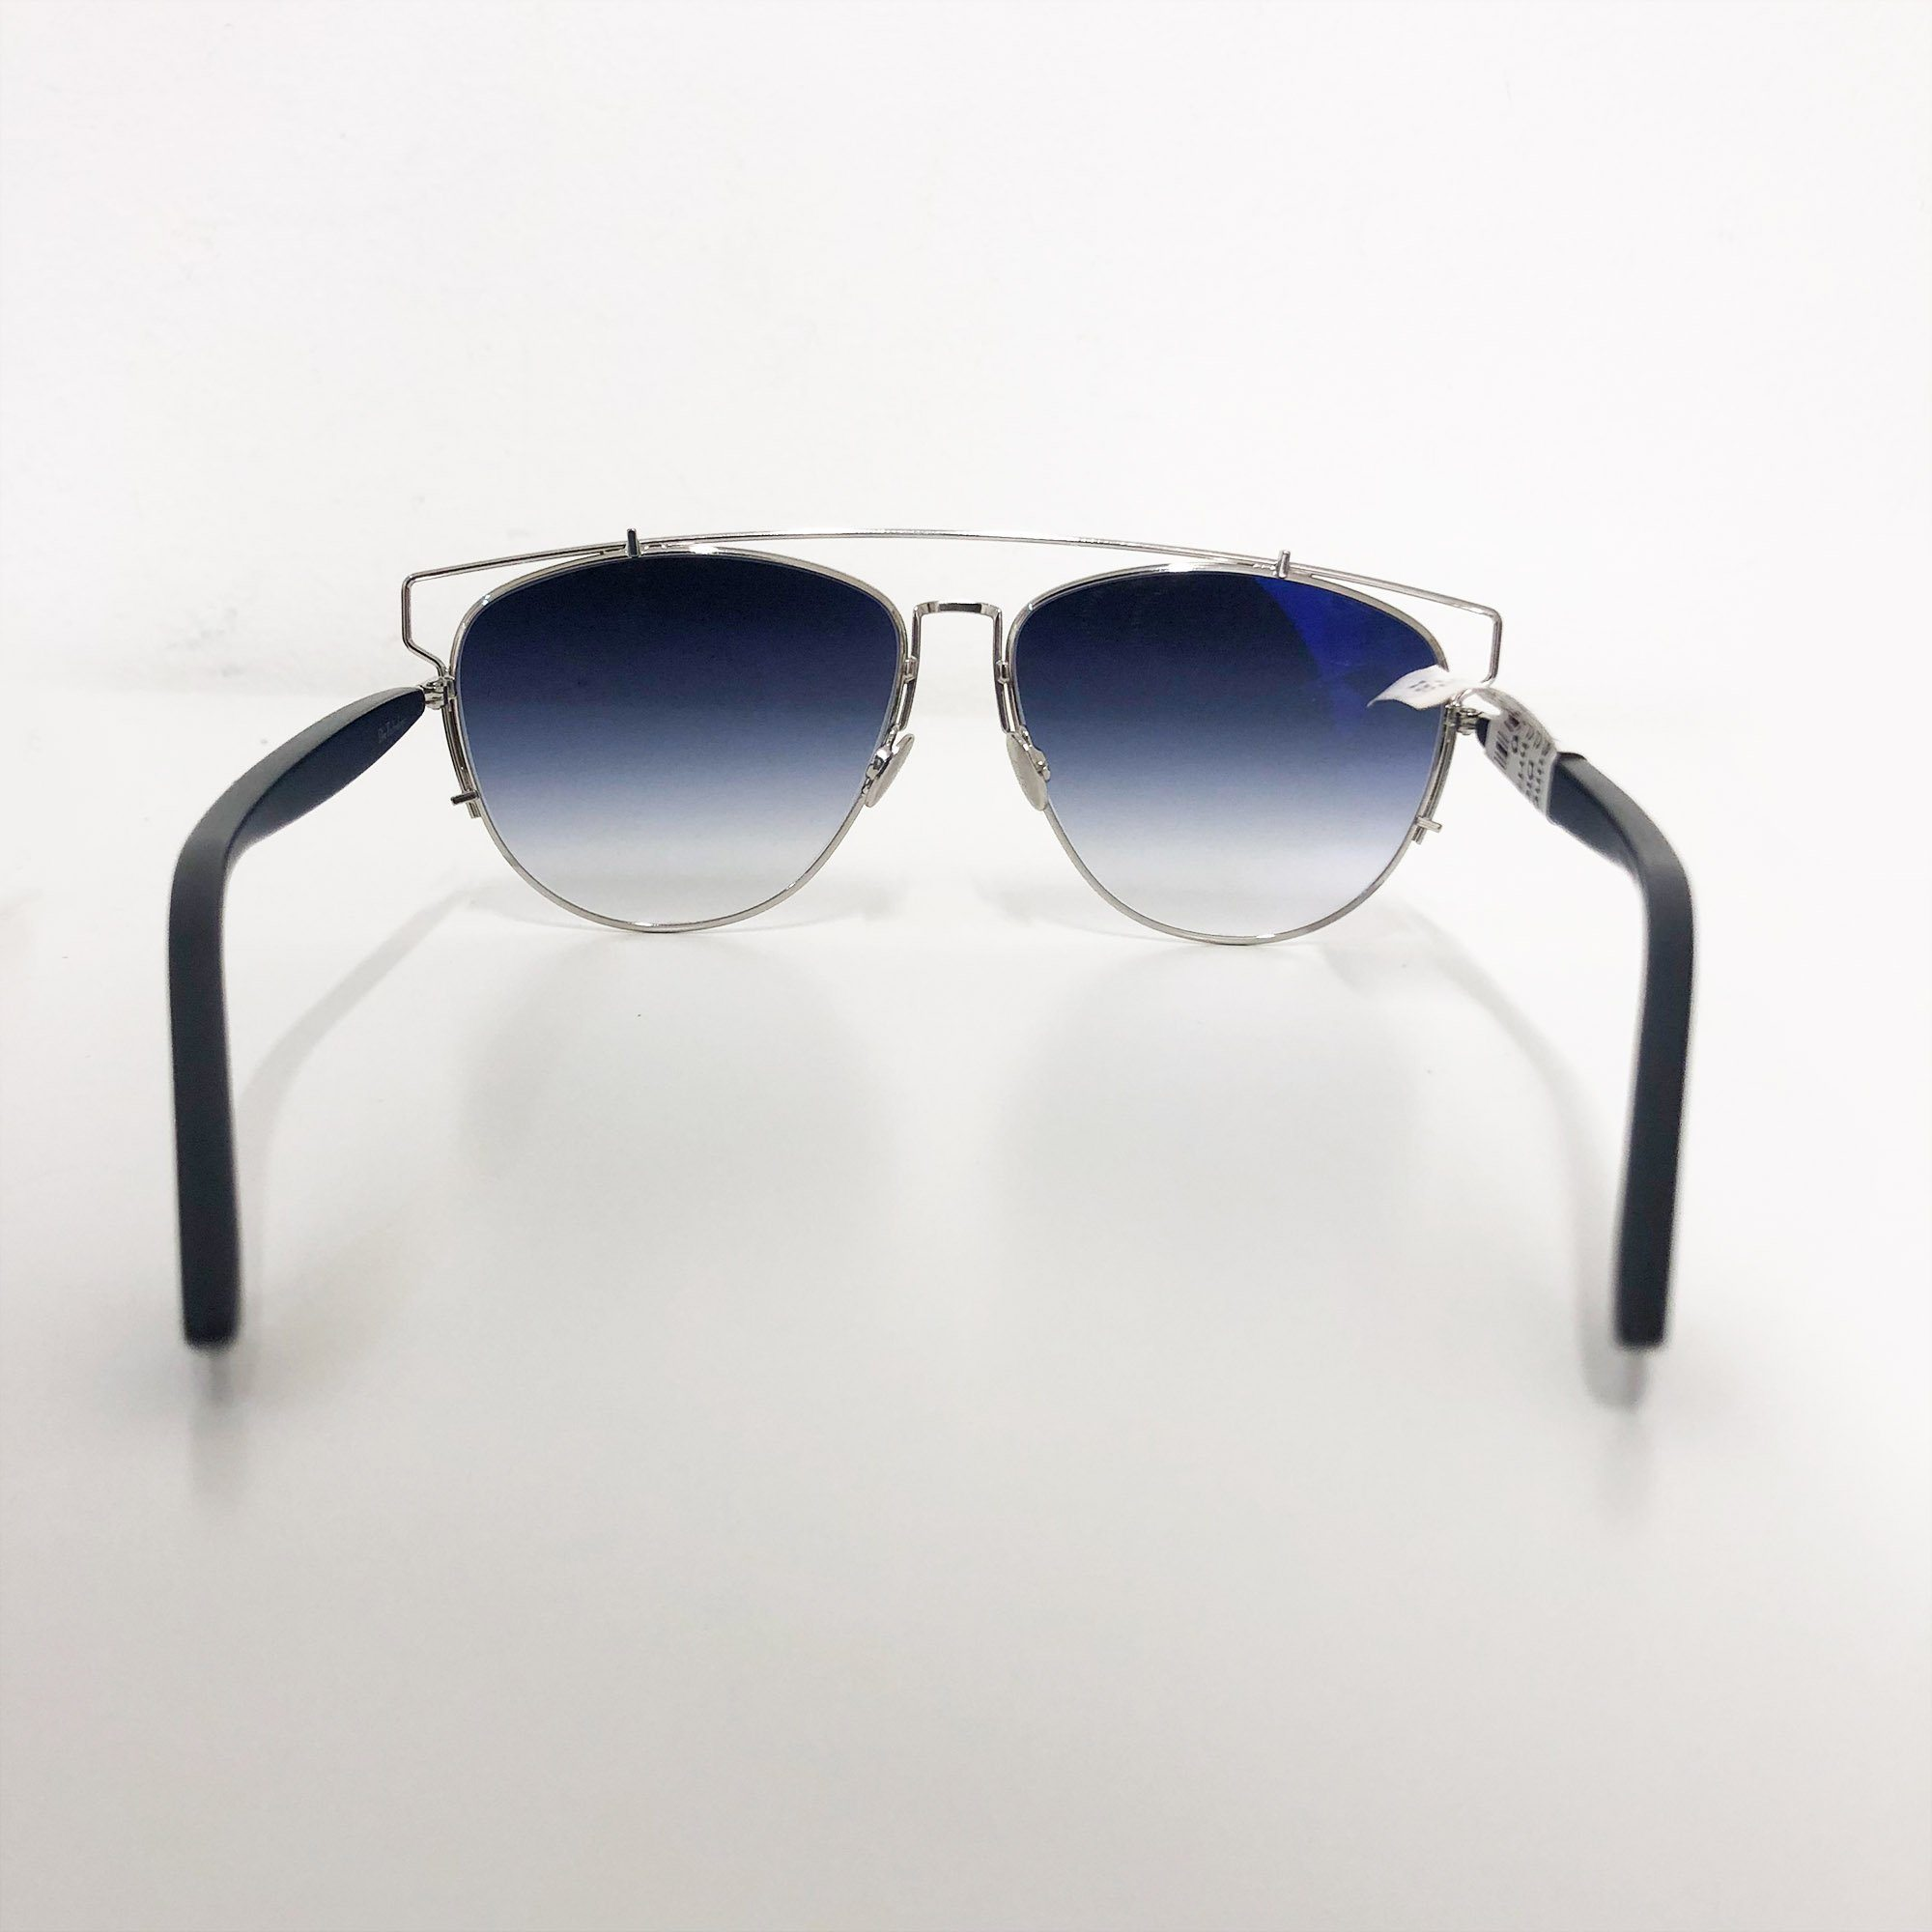 Christian Dior Diortechnologic Sunglasses